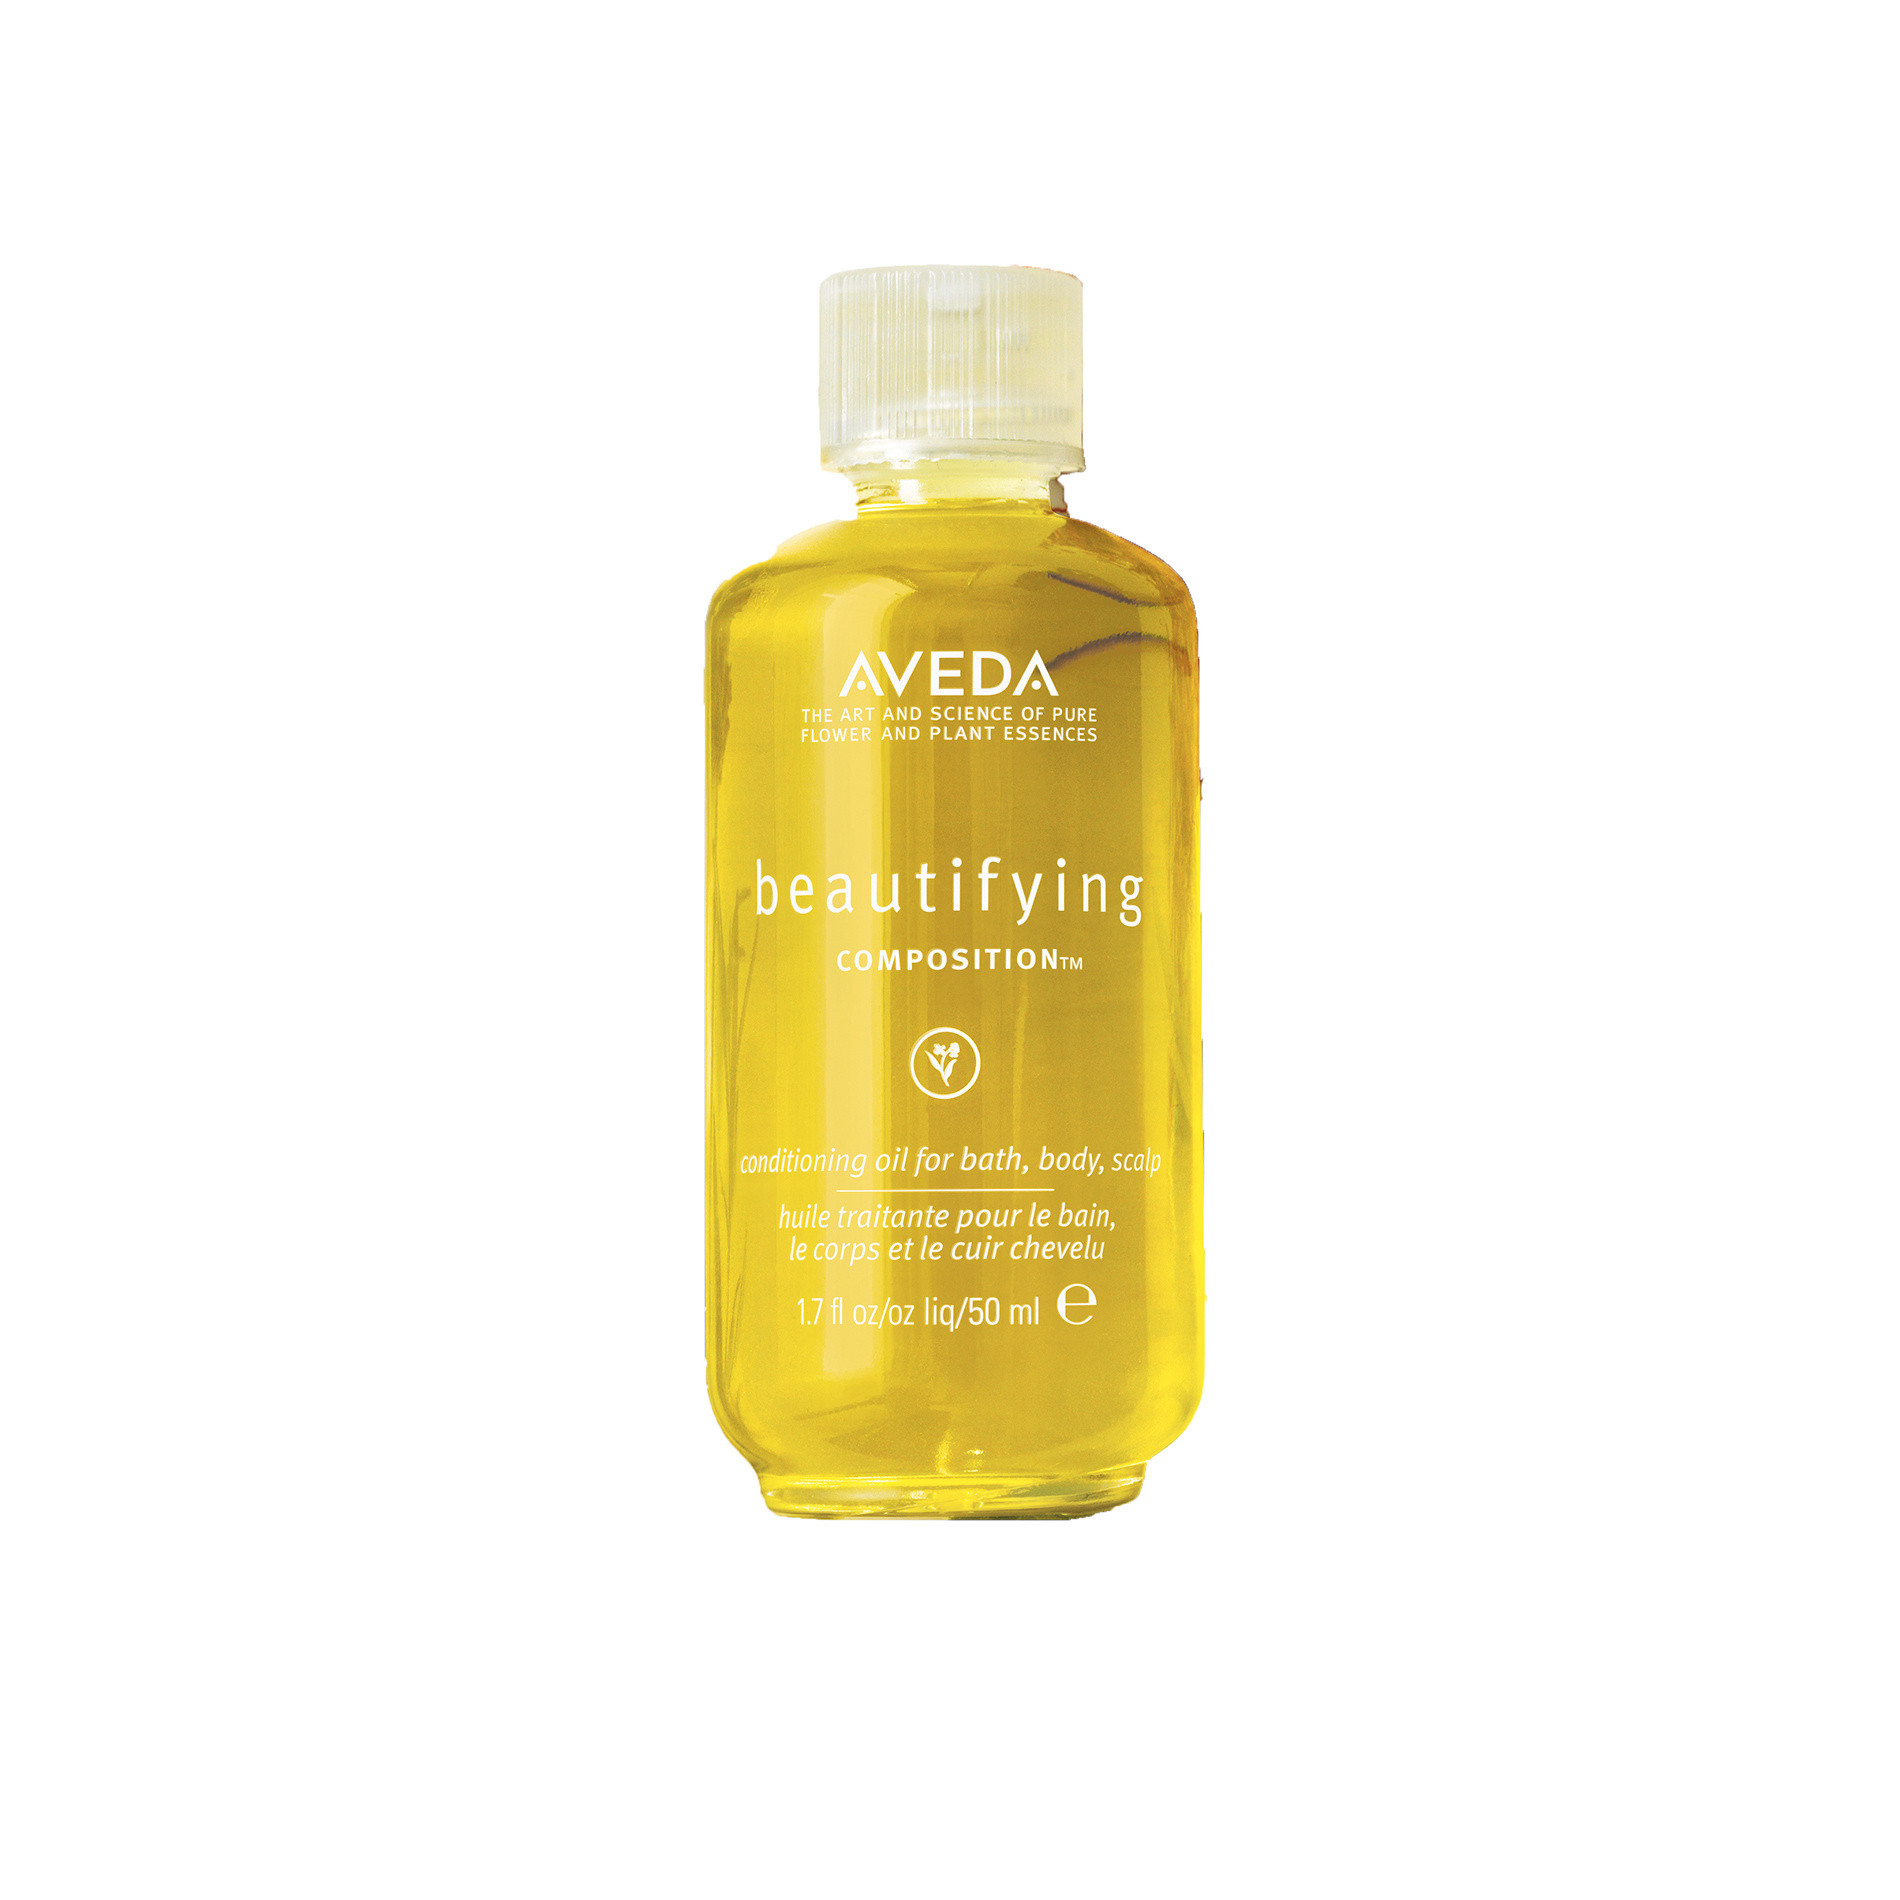 Aveda beautifying composition 60 ml, Beige, large image number 0